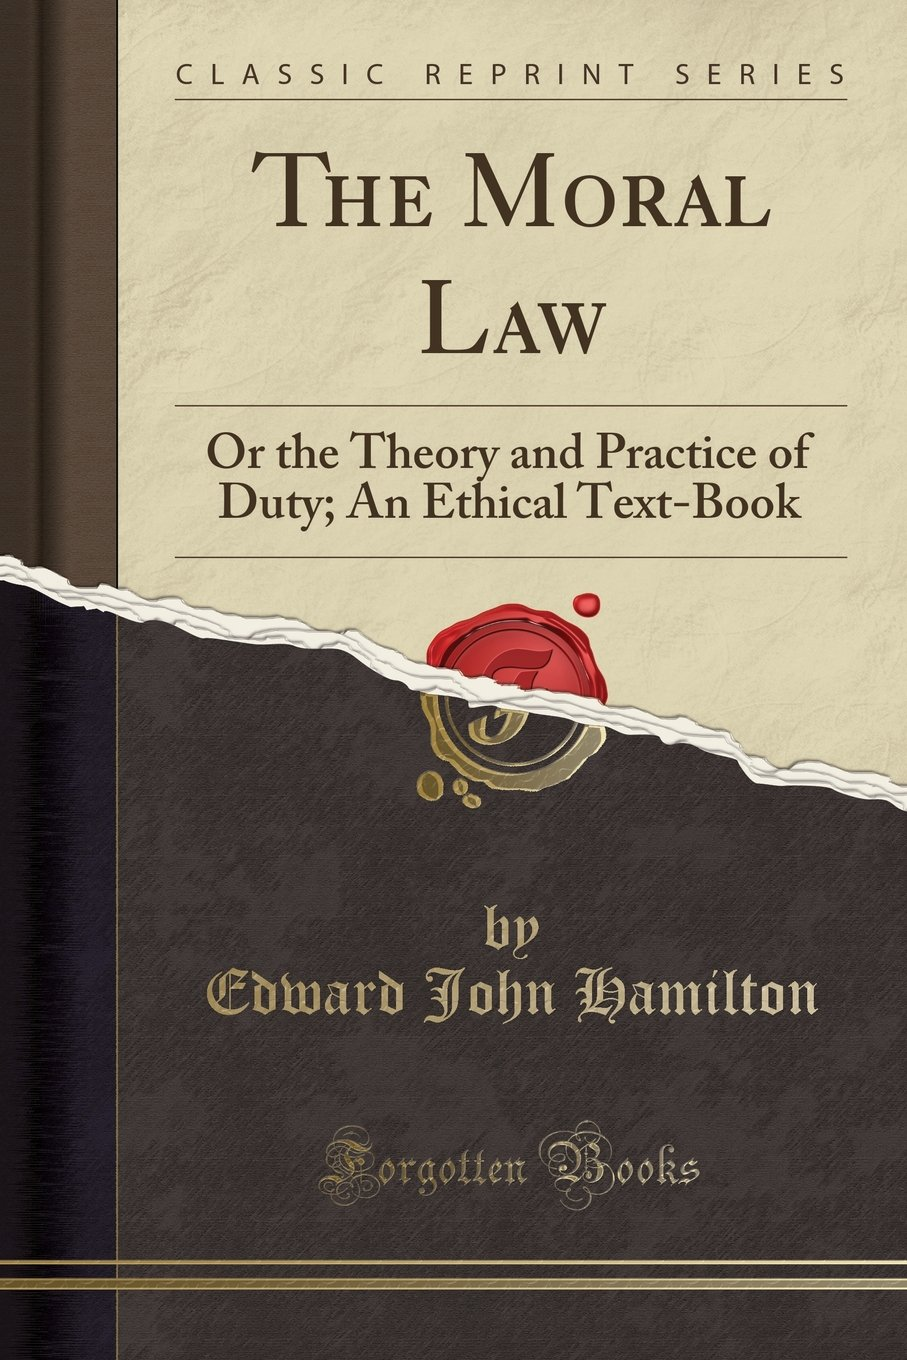 The Moral Law: Or the Theory and Practice of Duty; An Ethical Text-Book (Classic Reprint) PDF